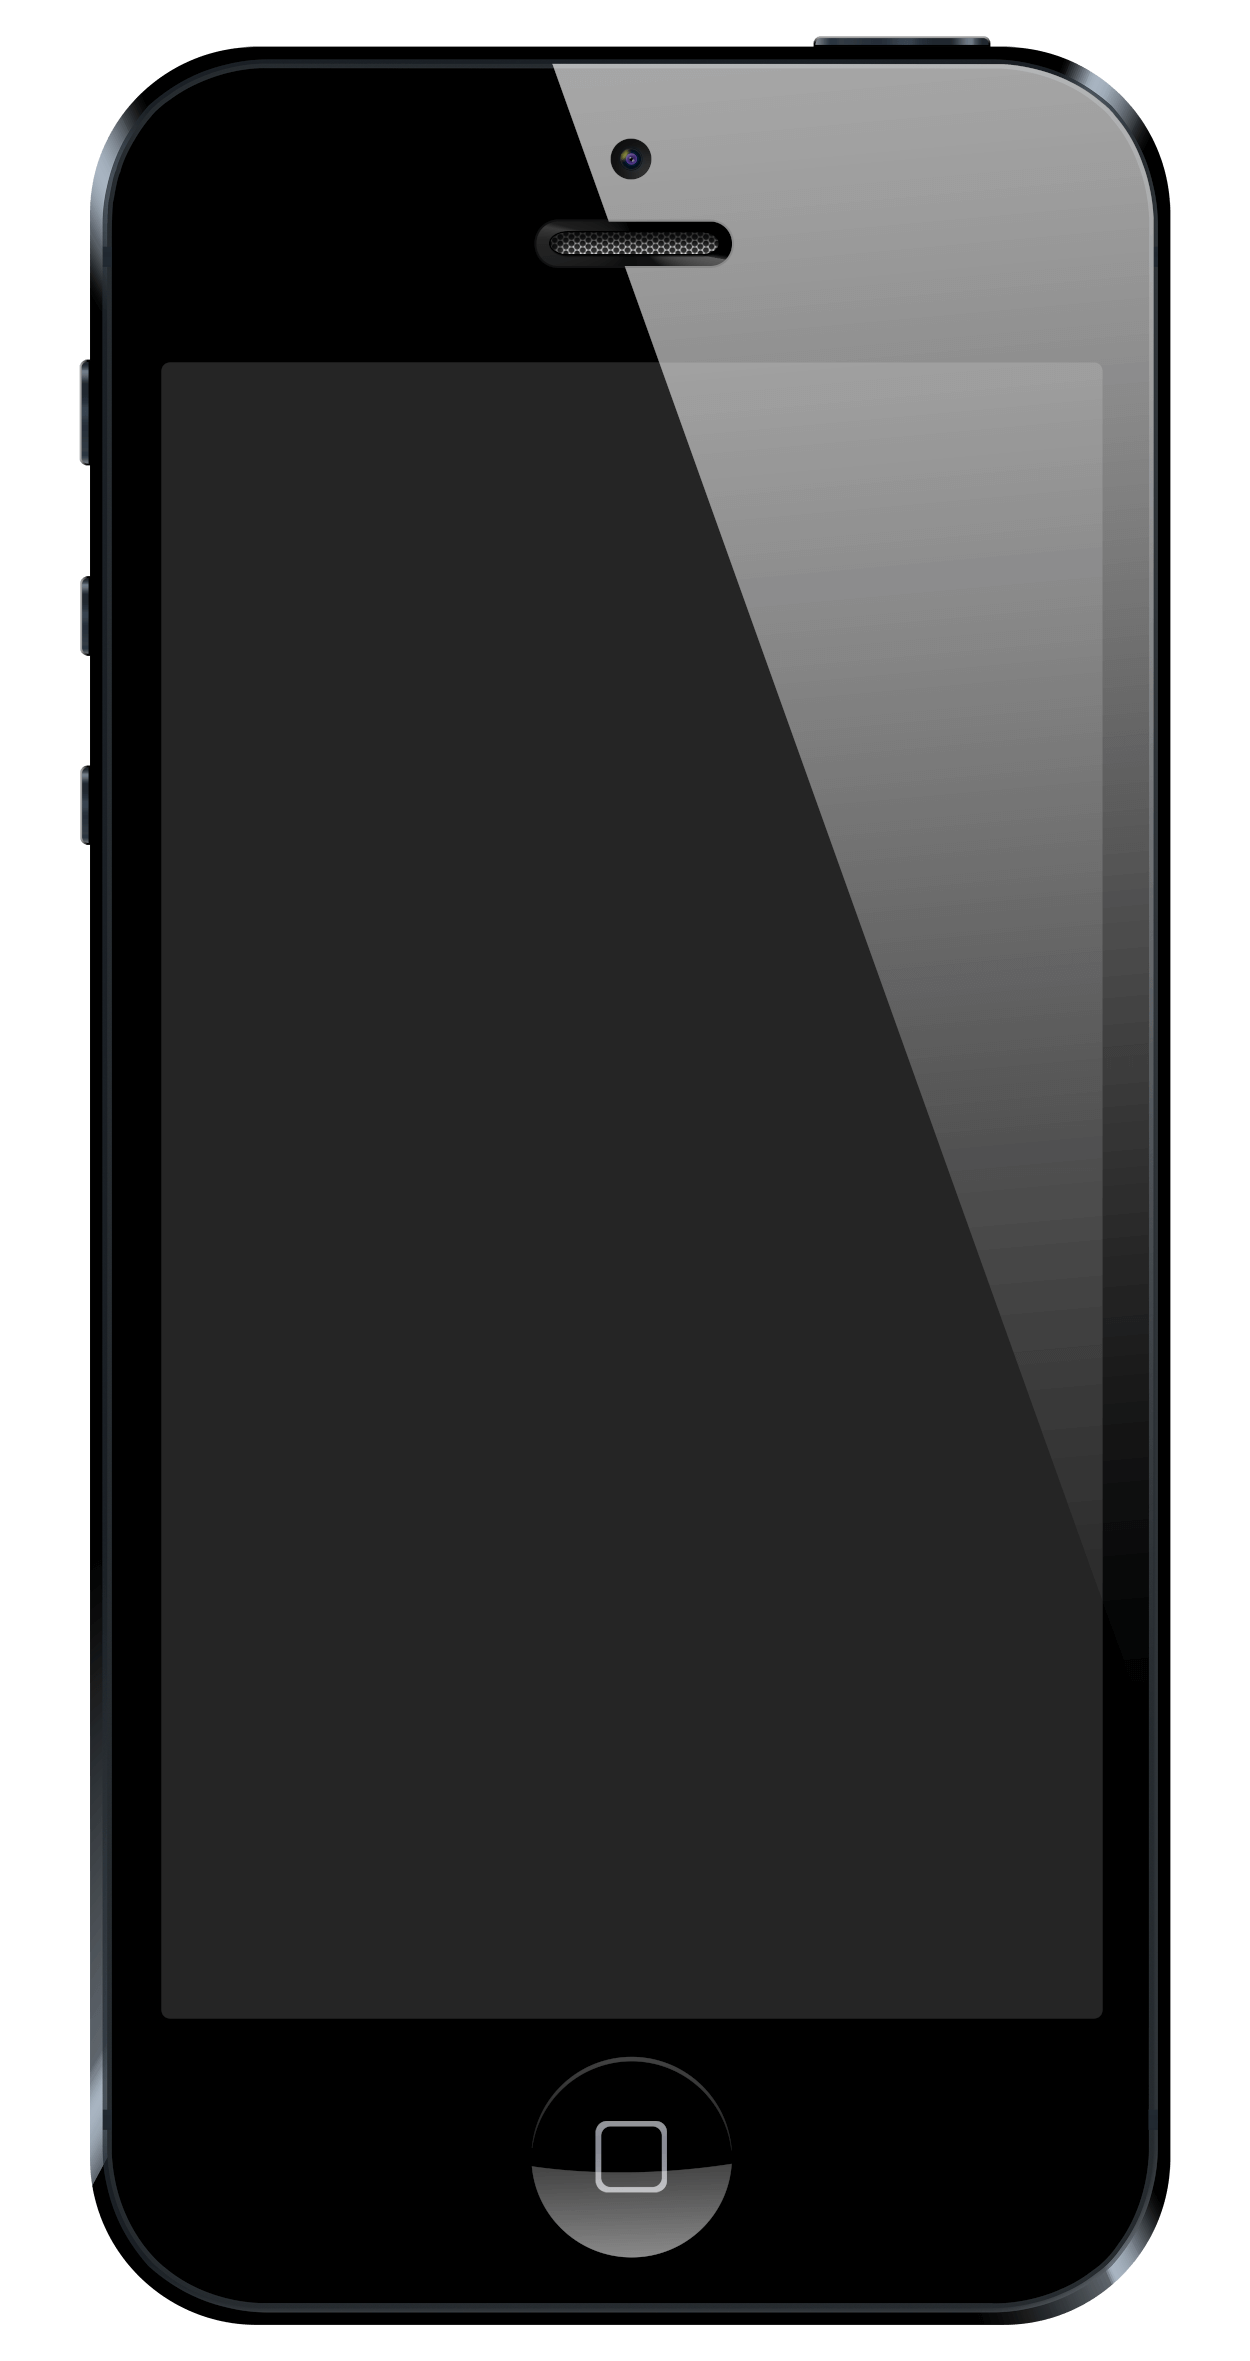 Image of iPhone 5